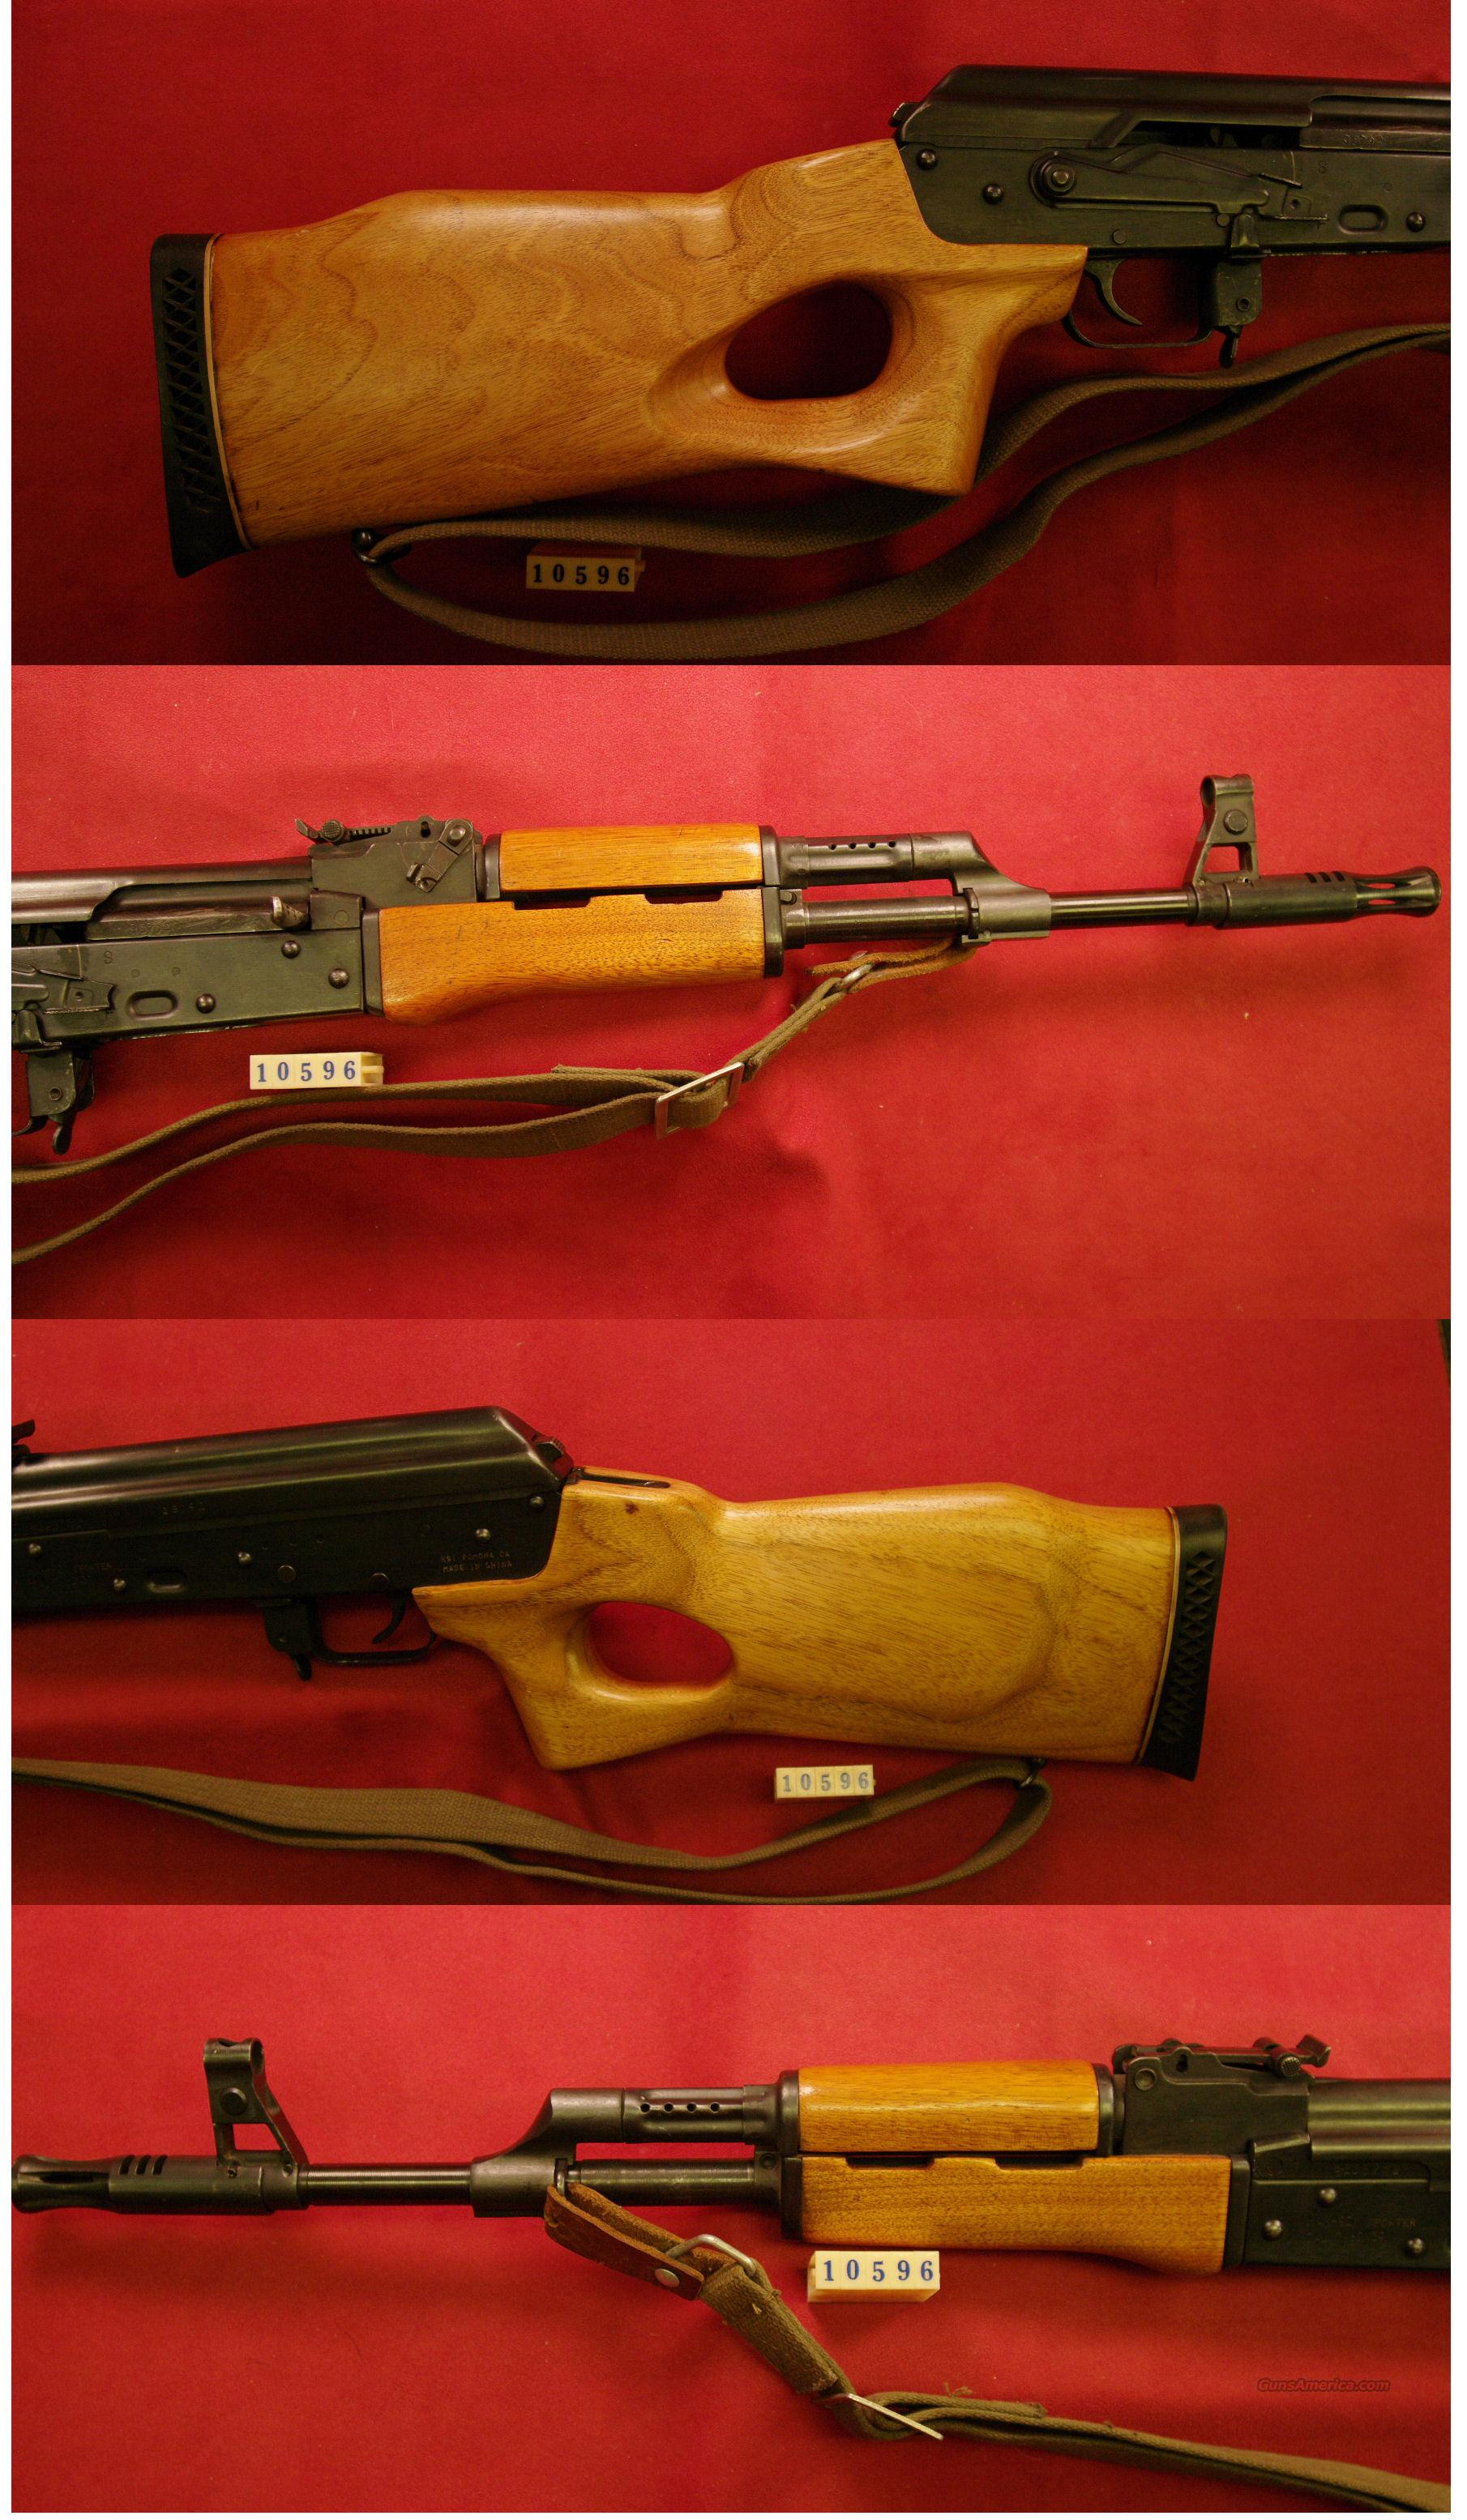 Norinco MAK-90 7.62x39mm  Guns > Rifles > Norinco Rifles